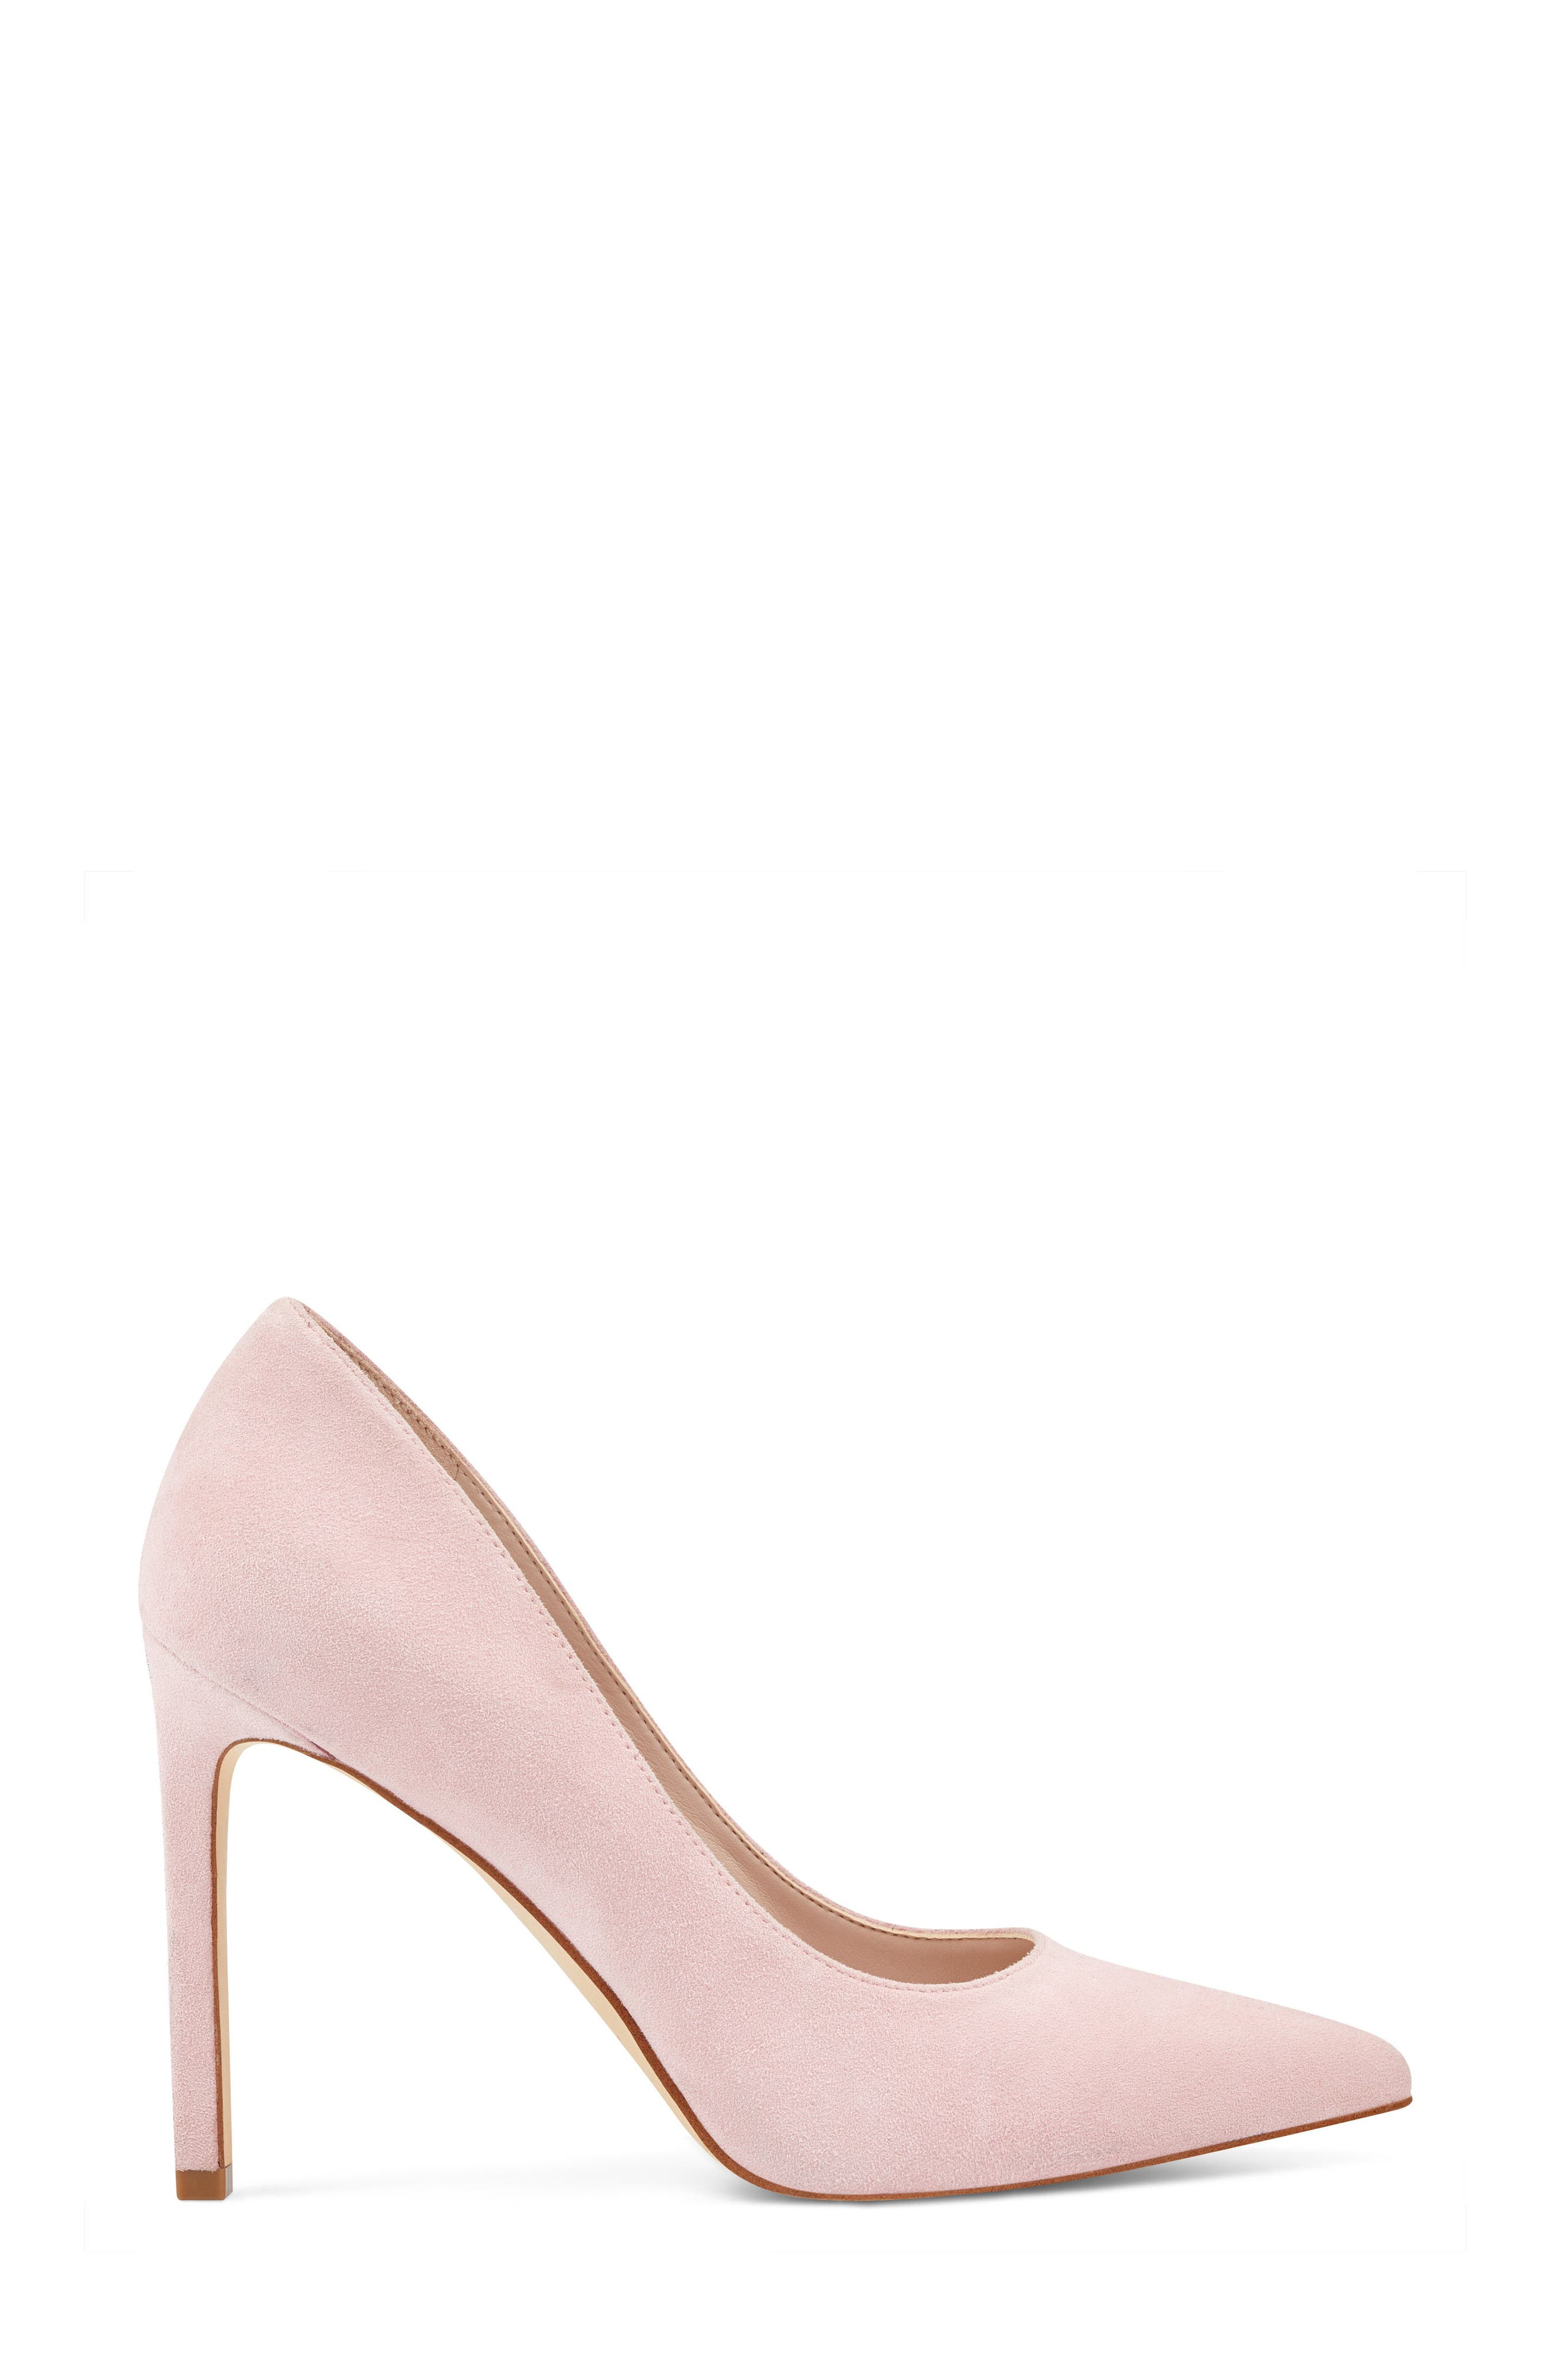 'Tatiana' Pointy Toe Pump,                             Alternate thumbnail 3, color,                             LIGHT PINK SUEDE